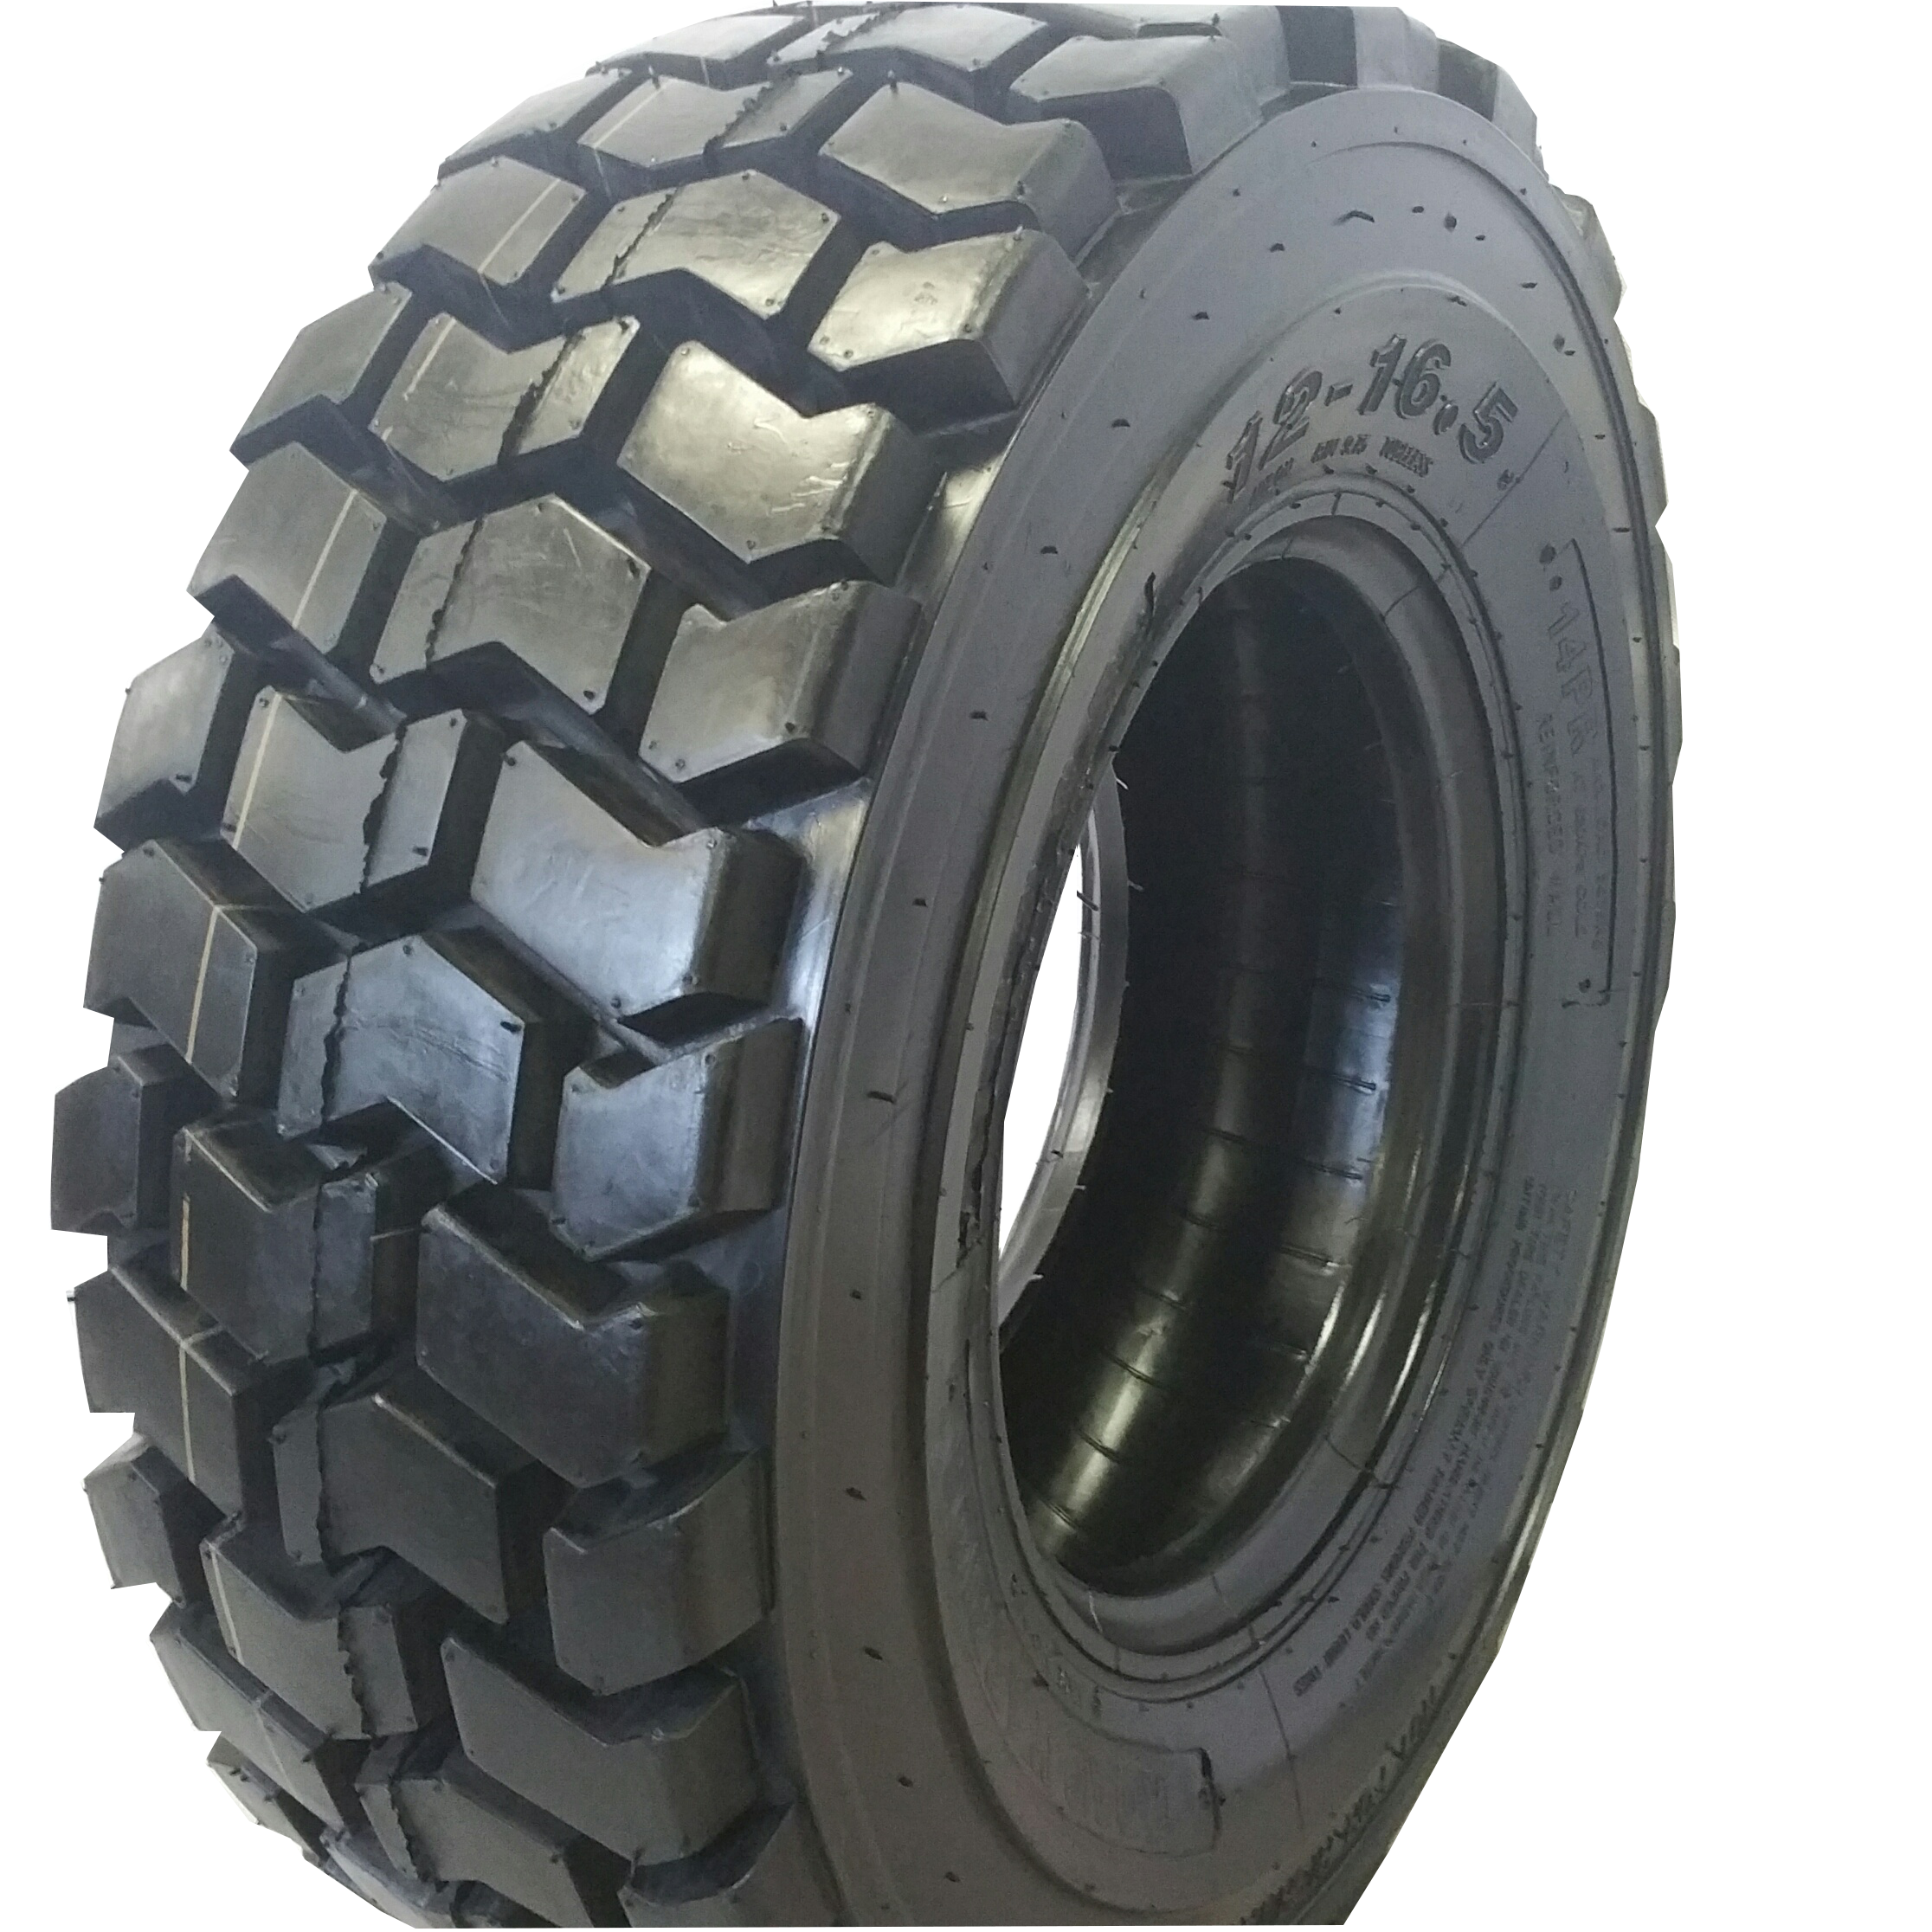 Tire skid png. Steer tires for bobcat